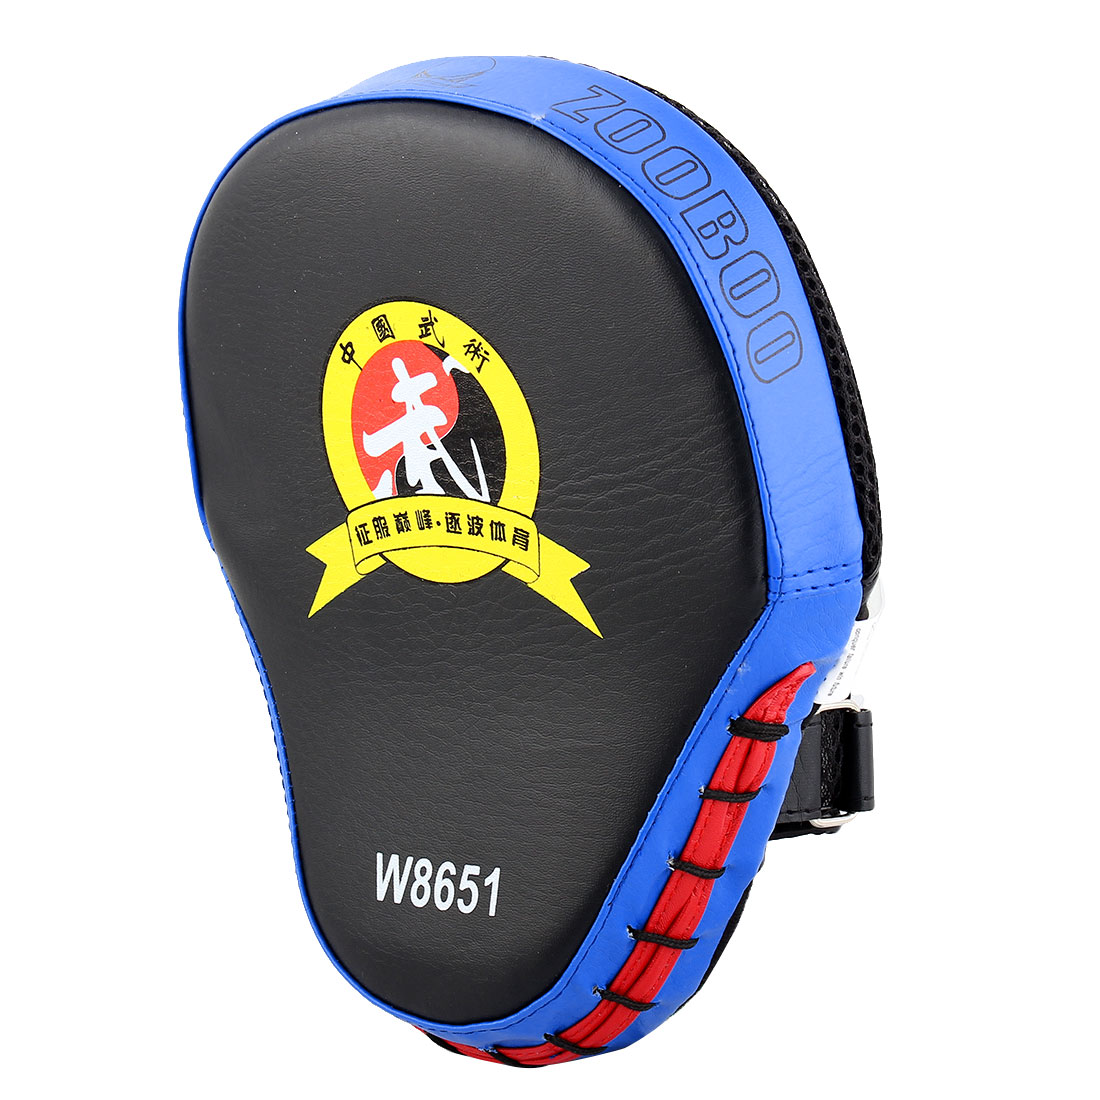 Karate Thai Kick MMA Boxing Punching Mitt Target Focus Pads Strike Shield Blue